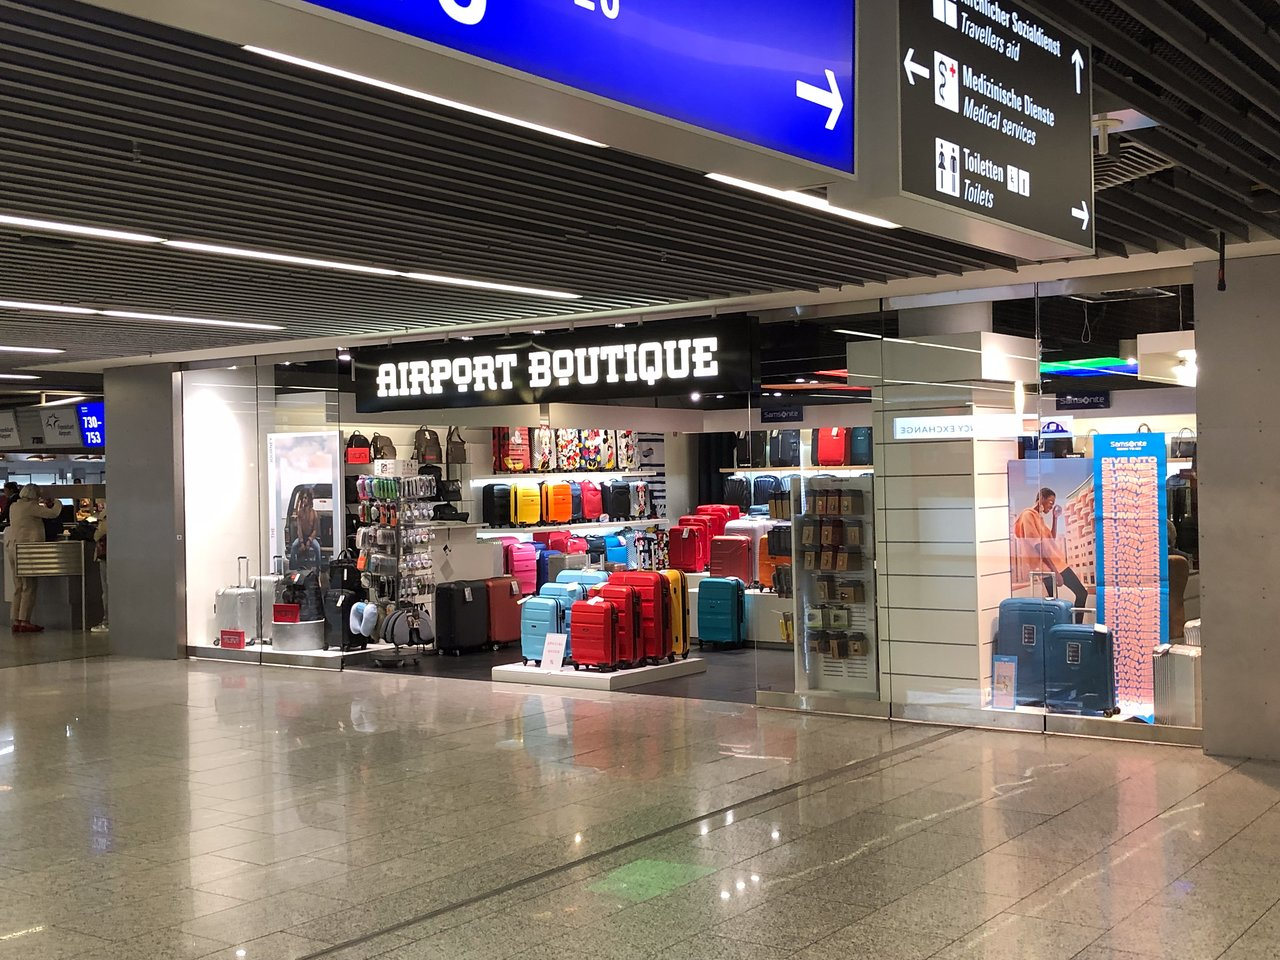 Outdoor Geschäft Frankfurt Airport Boutique (frankfurt) - 2021 All You Need To Know Before You Go | Tours & Tickets (with Photos) - Tripadvisor